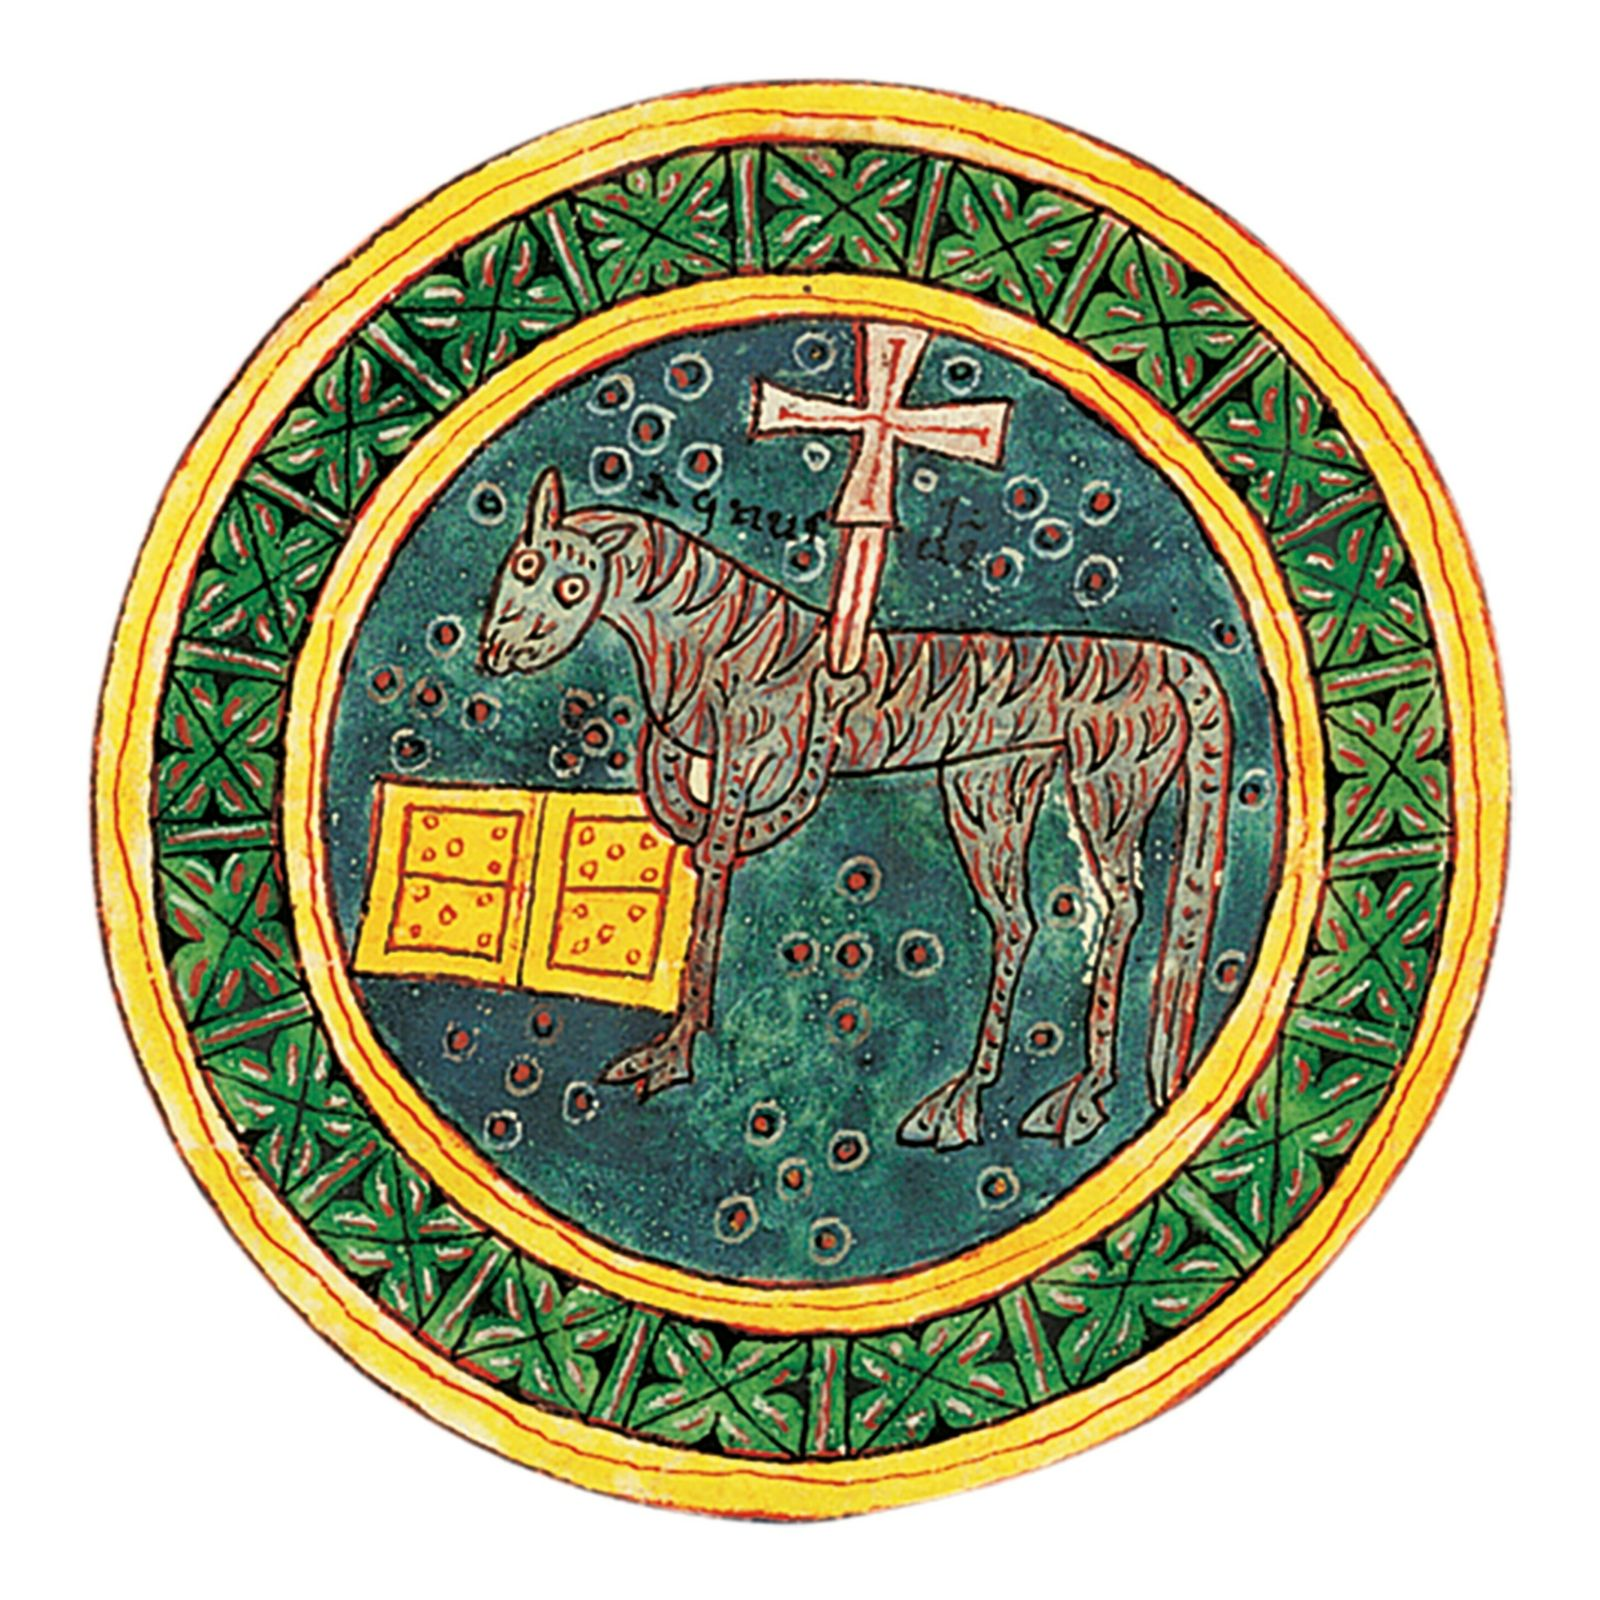 The lamb receives the seal